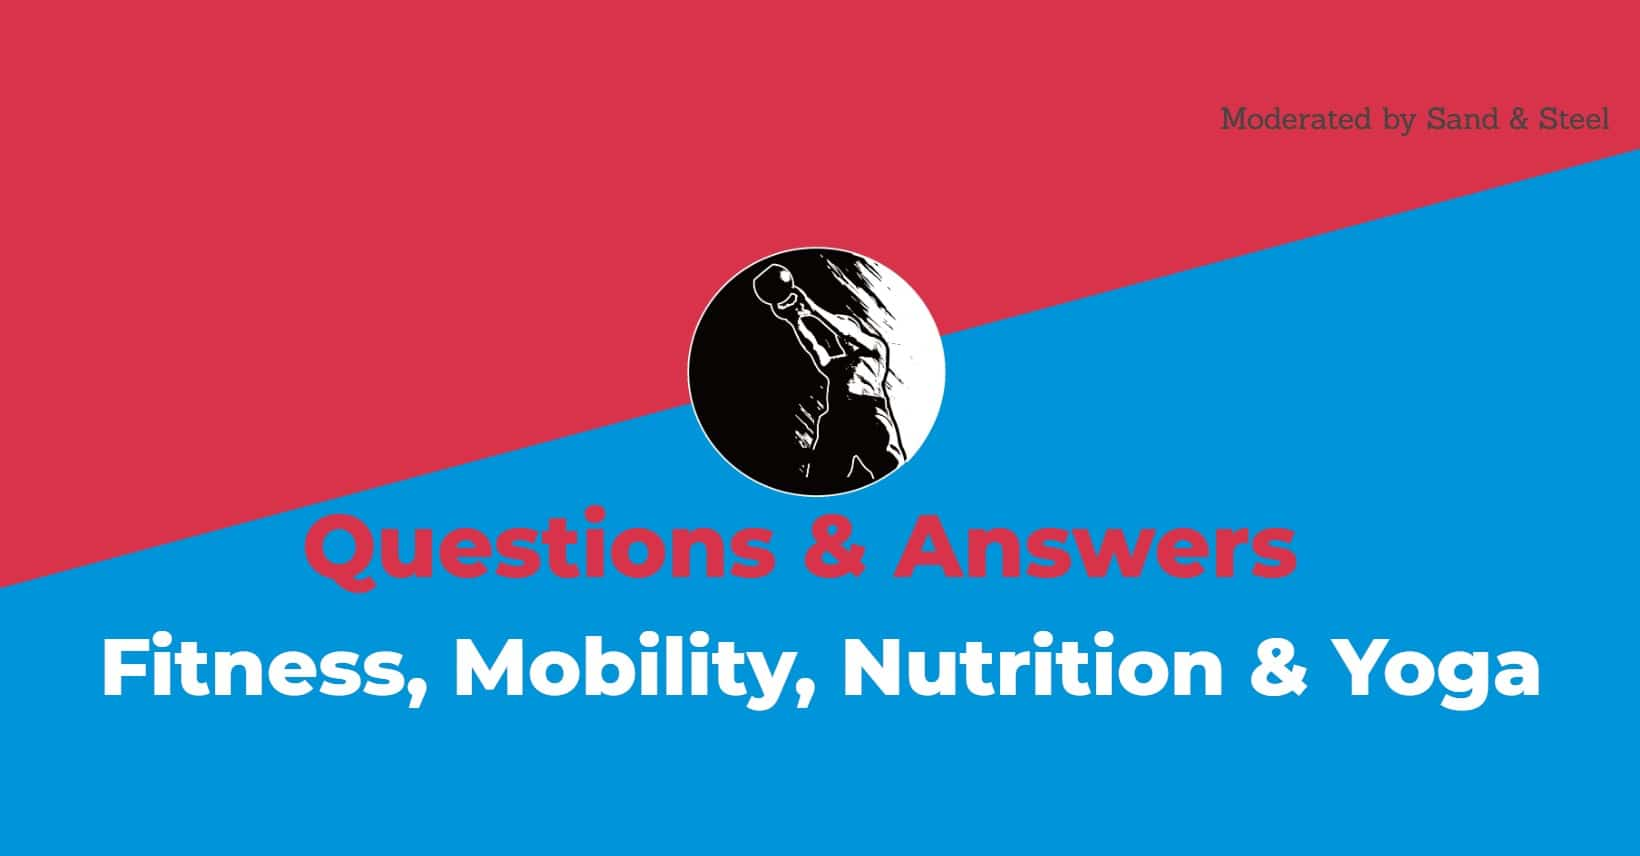 Q&A Fitness, Personal Training, Yoga, Nutrition, Mobility, & Therapy